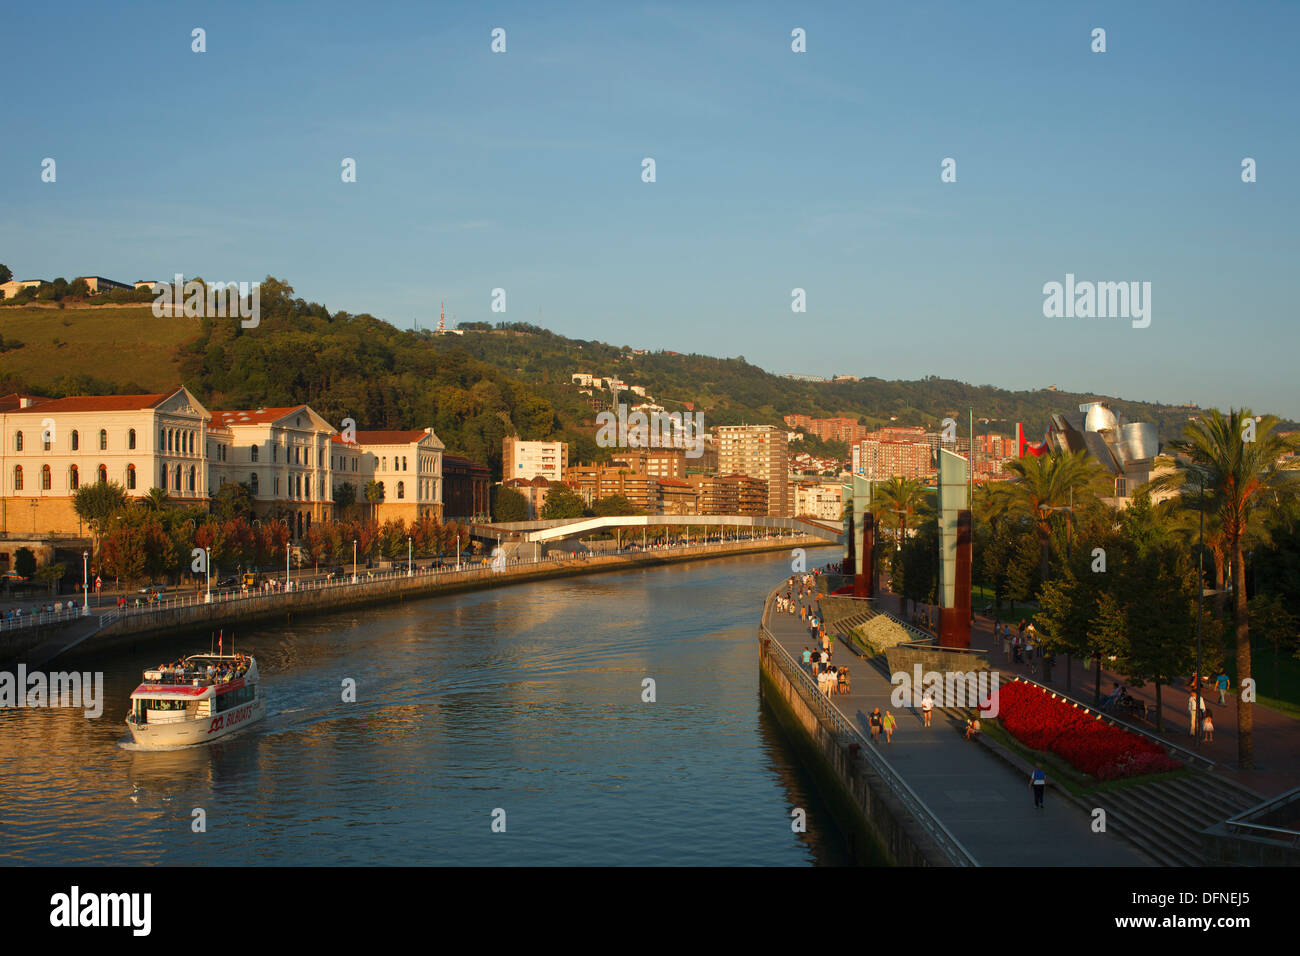 Universidad de Deusto, university at the river Rio Nervion in the evening light, Guggenheim Museum of modern and contemporary ar - Stock Image